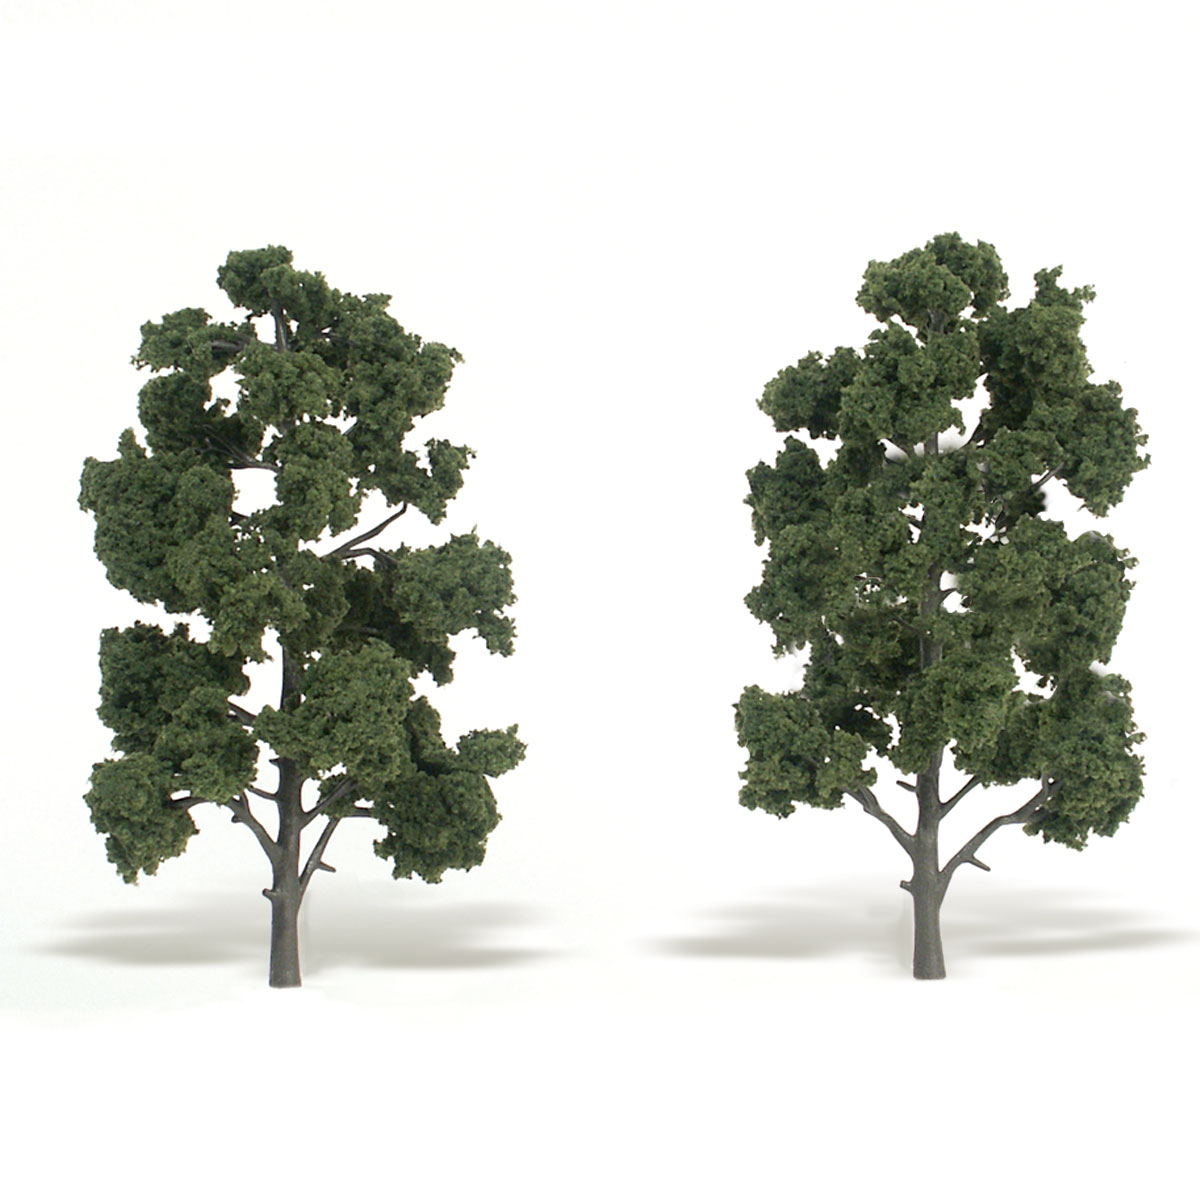 Ready Made Realistic Trees™ Medium Green - 2/pkg 8-9 inches